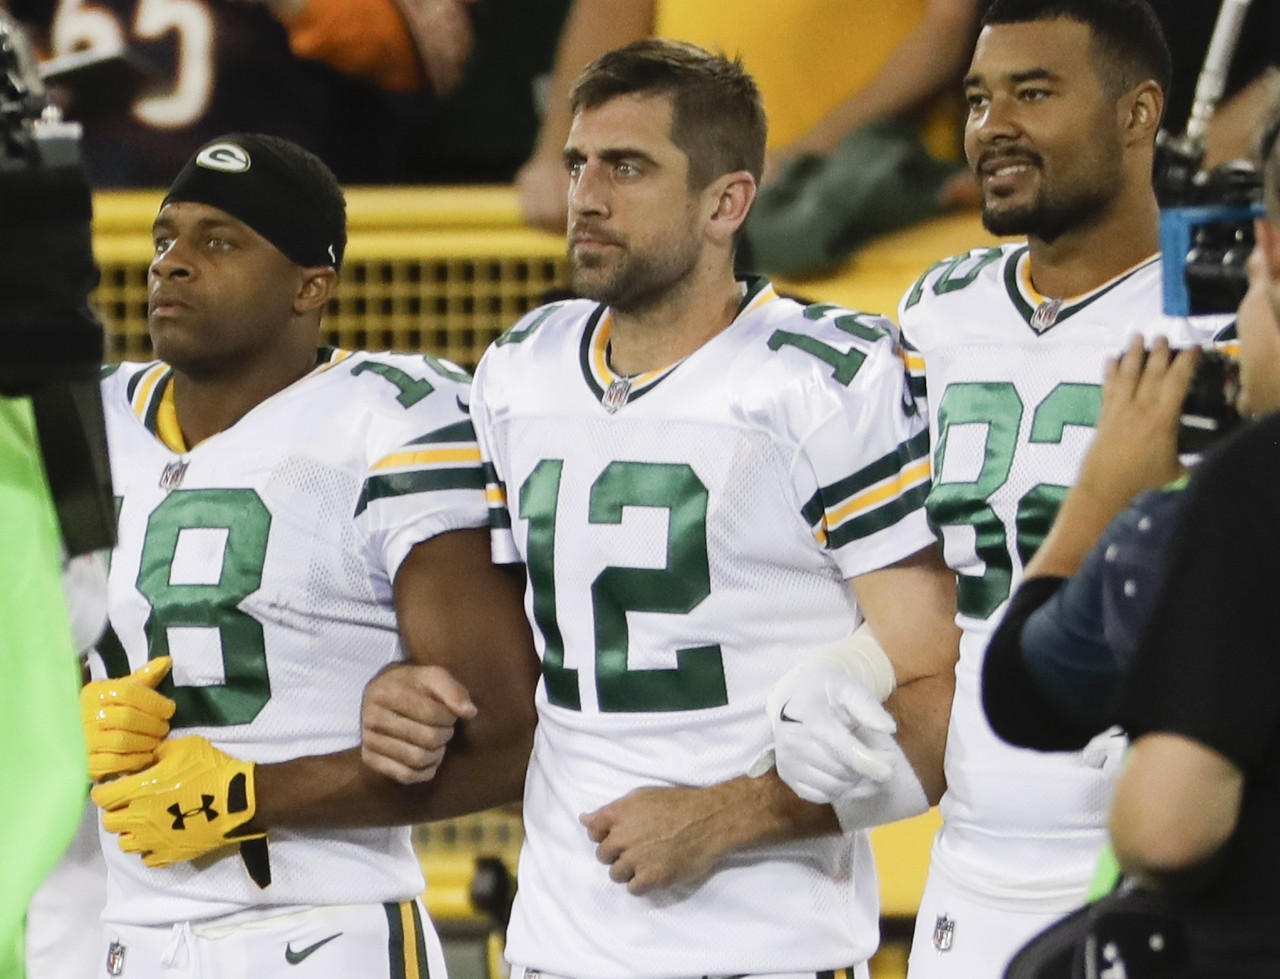 Green Bay Packers' Aaron Rodgers links arms with Richard Rodgers and Randall Cobb during the national anthem before an NFL football game against the Chicago Bears Thursday, Sept. 28, 2017, in Green Bay, Wis.